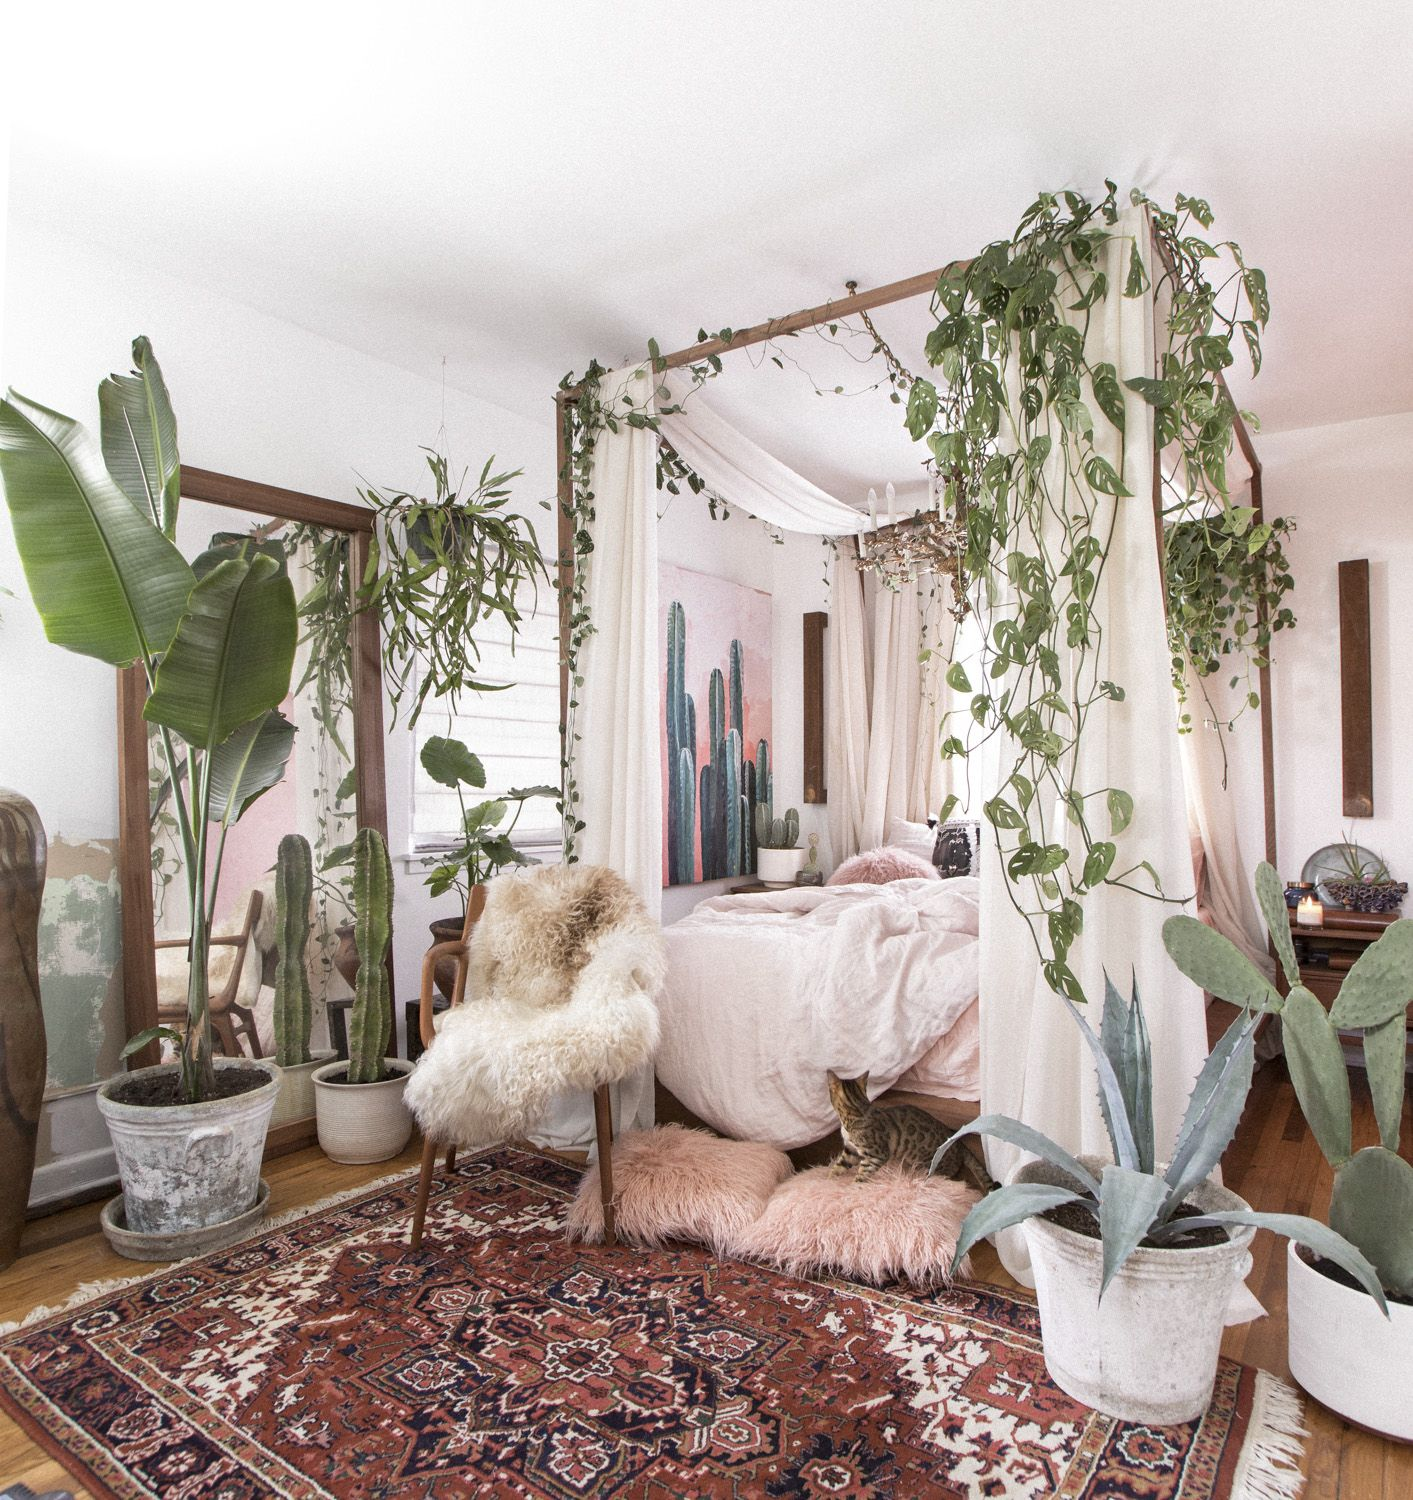 In need of some small space decor tips? Tour photographer Chelsae Horton's stunning 650-square-foot home filled with plants and artistic touches for the ultimat